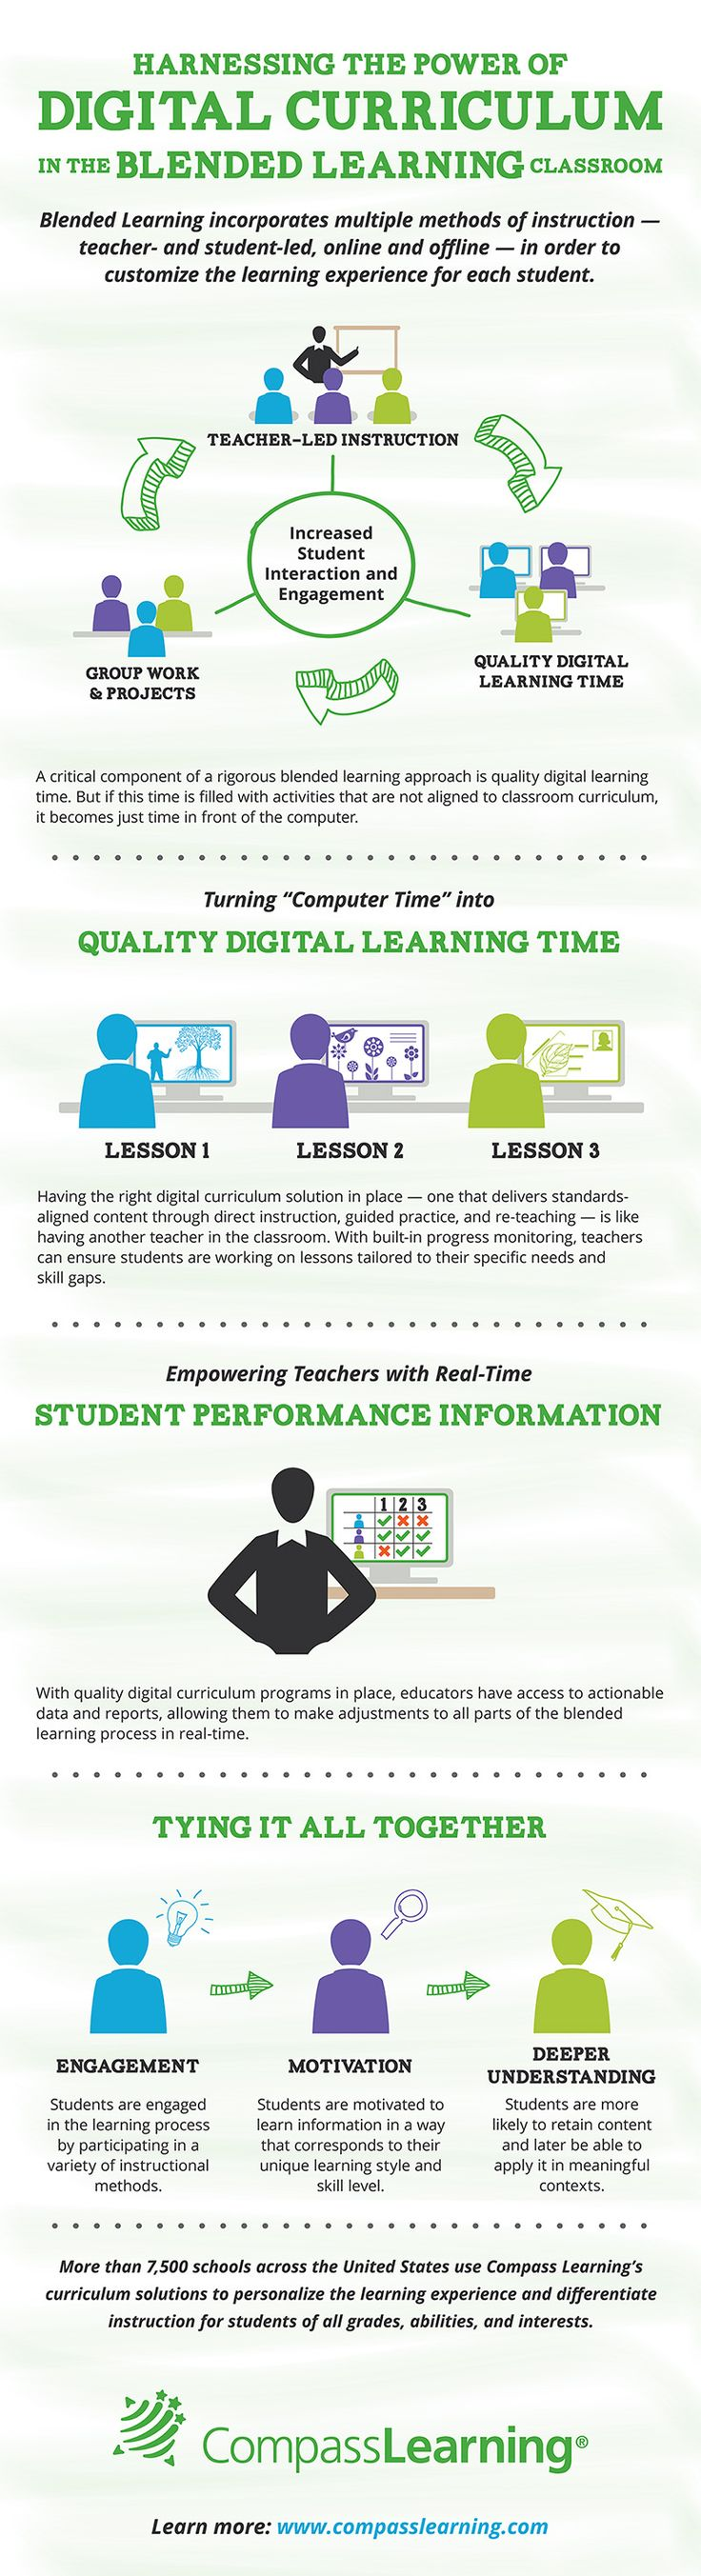 Harnessing The Power of Digital Curriculum In The Blended Learning Classroom Infographic | e-Learning Infographics